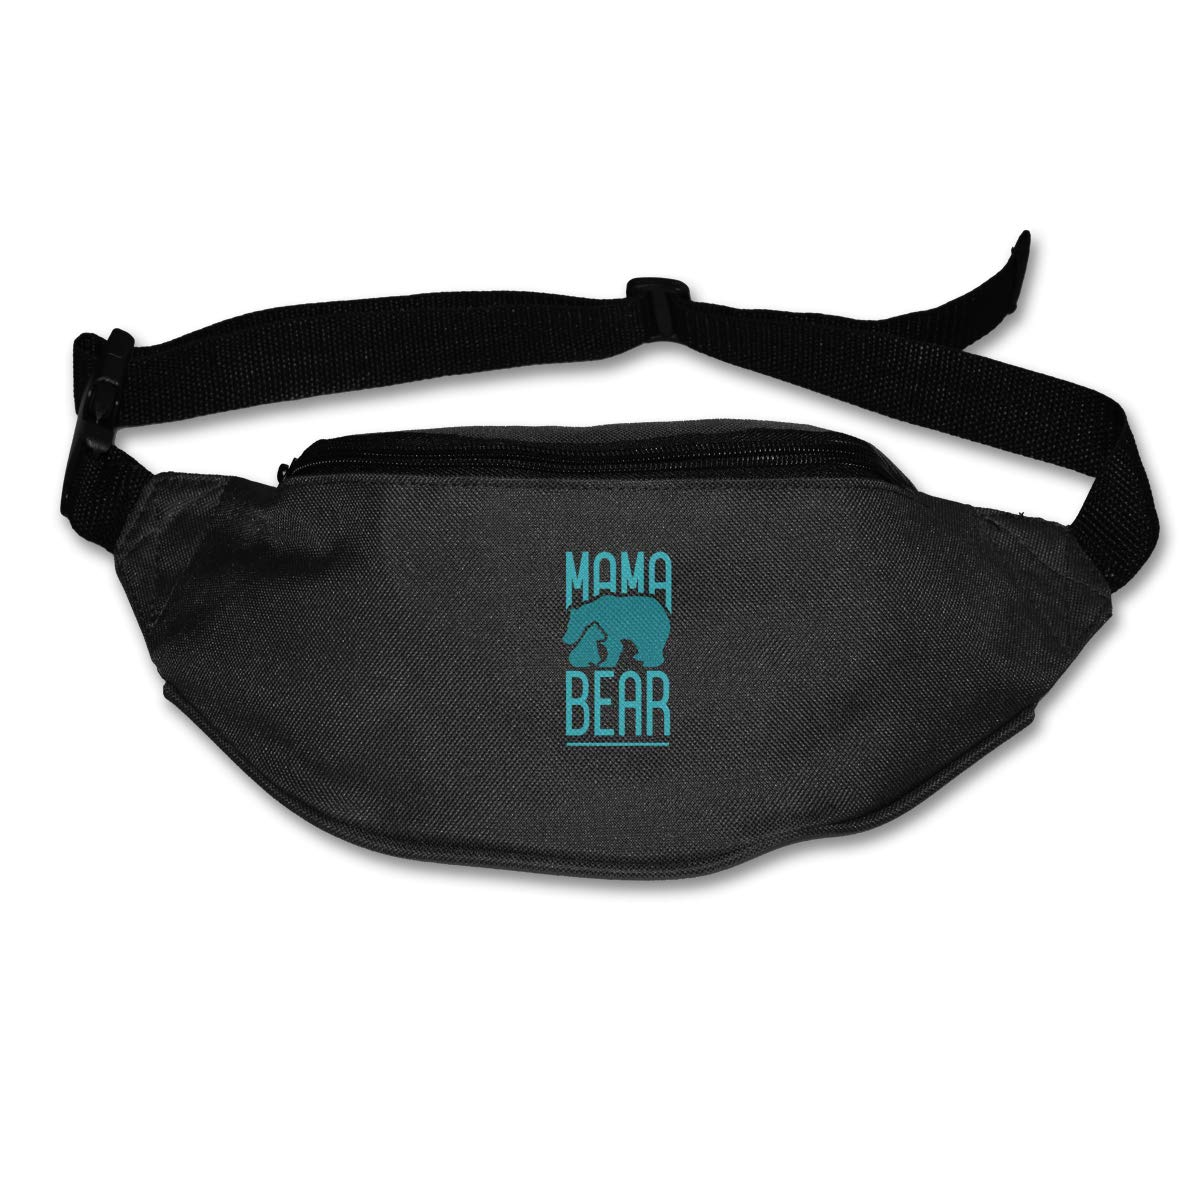 Blue Mama Bear Sport Waist Pack Fanny Pack Adjustable For Run